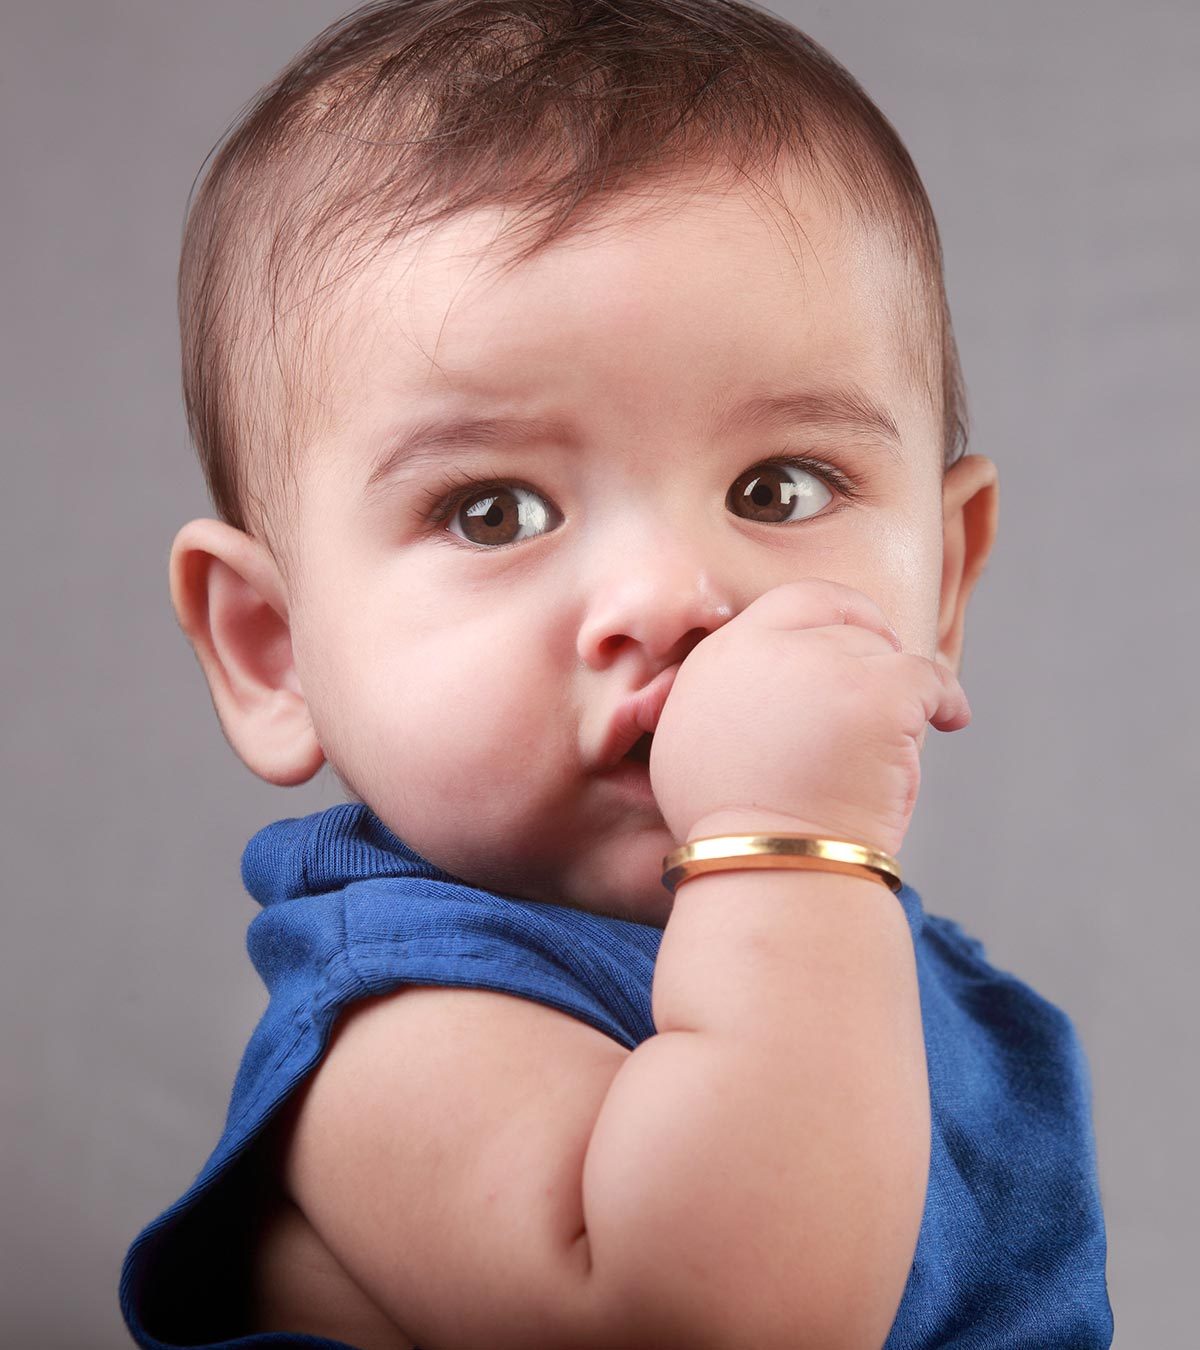 250 Latest Modern And Unique Hindu Baby Boy Names